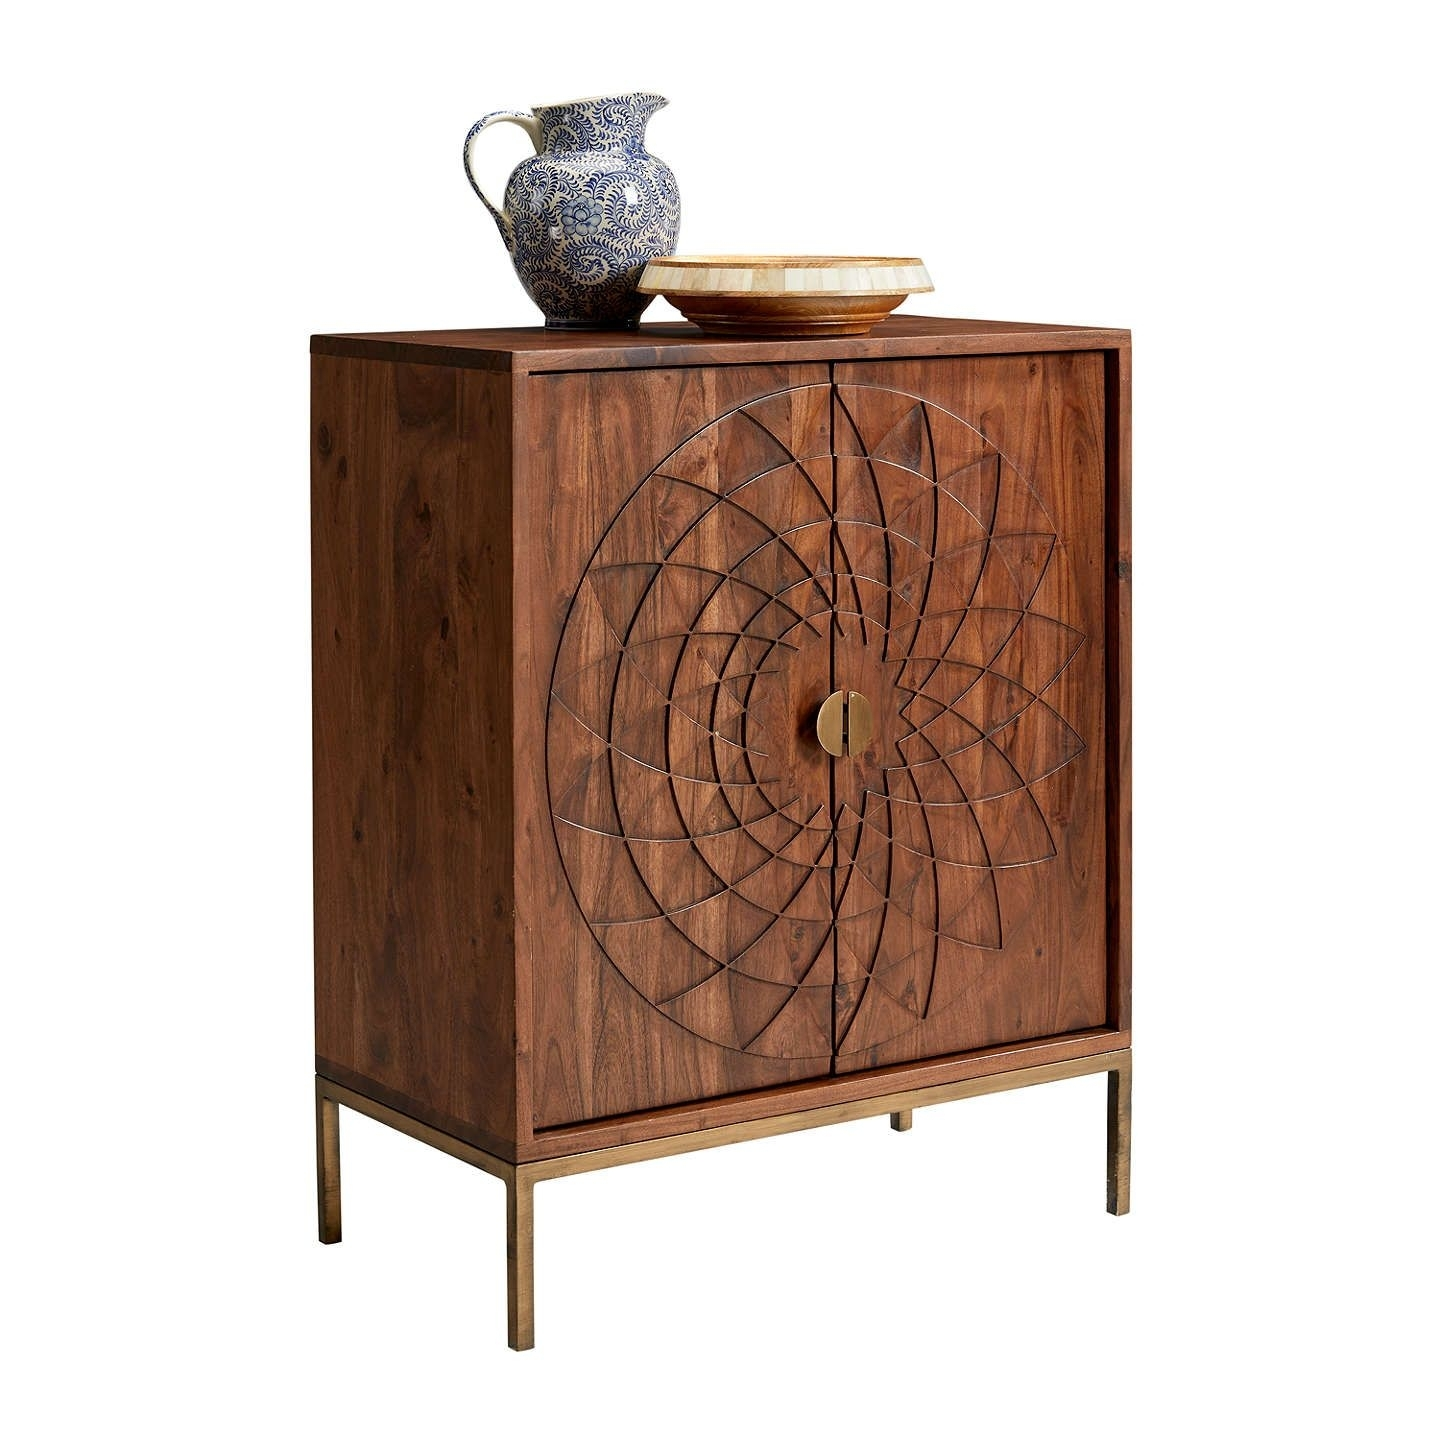 John Lewis & Partners Array Fusion Cabinet, Dark Brown | Sitting within 4-Door/4-Drawer Cast Jali Sideboards (Image 14 of 30)